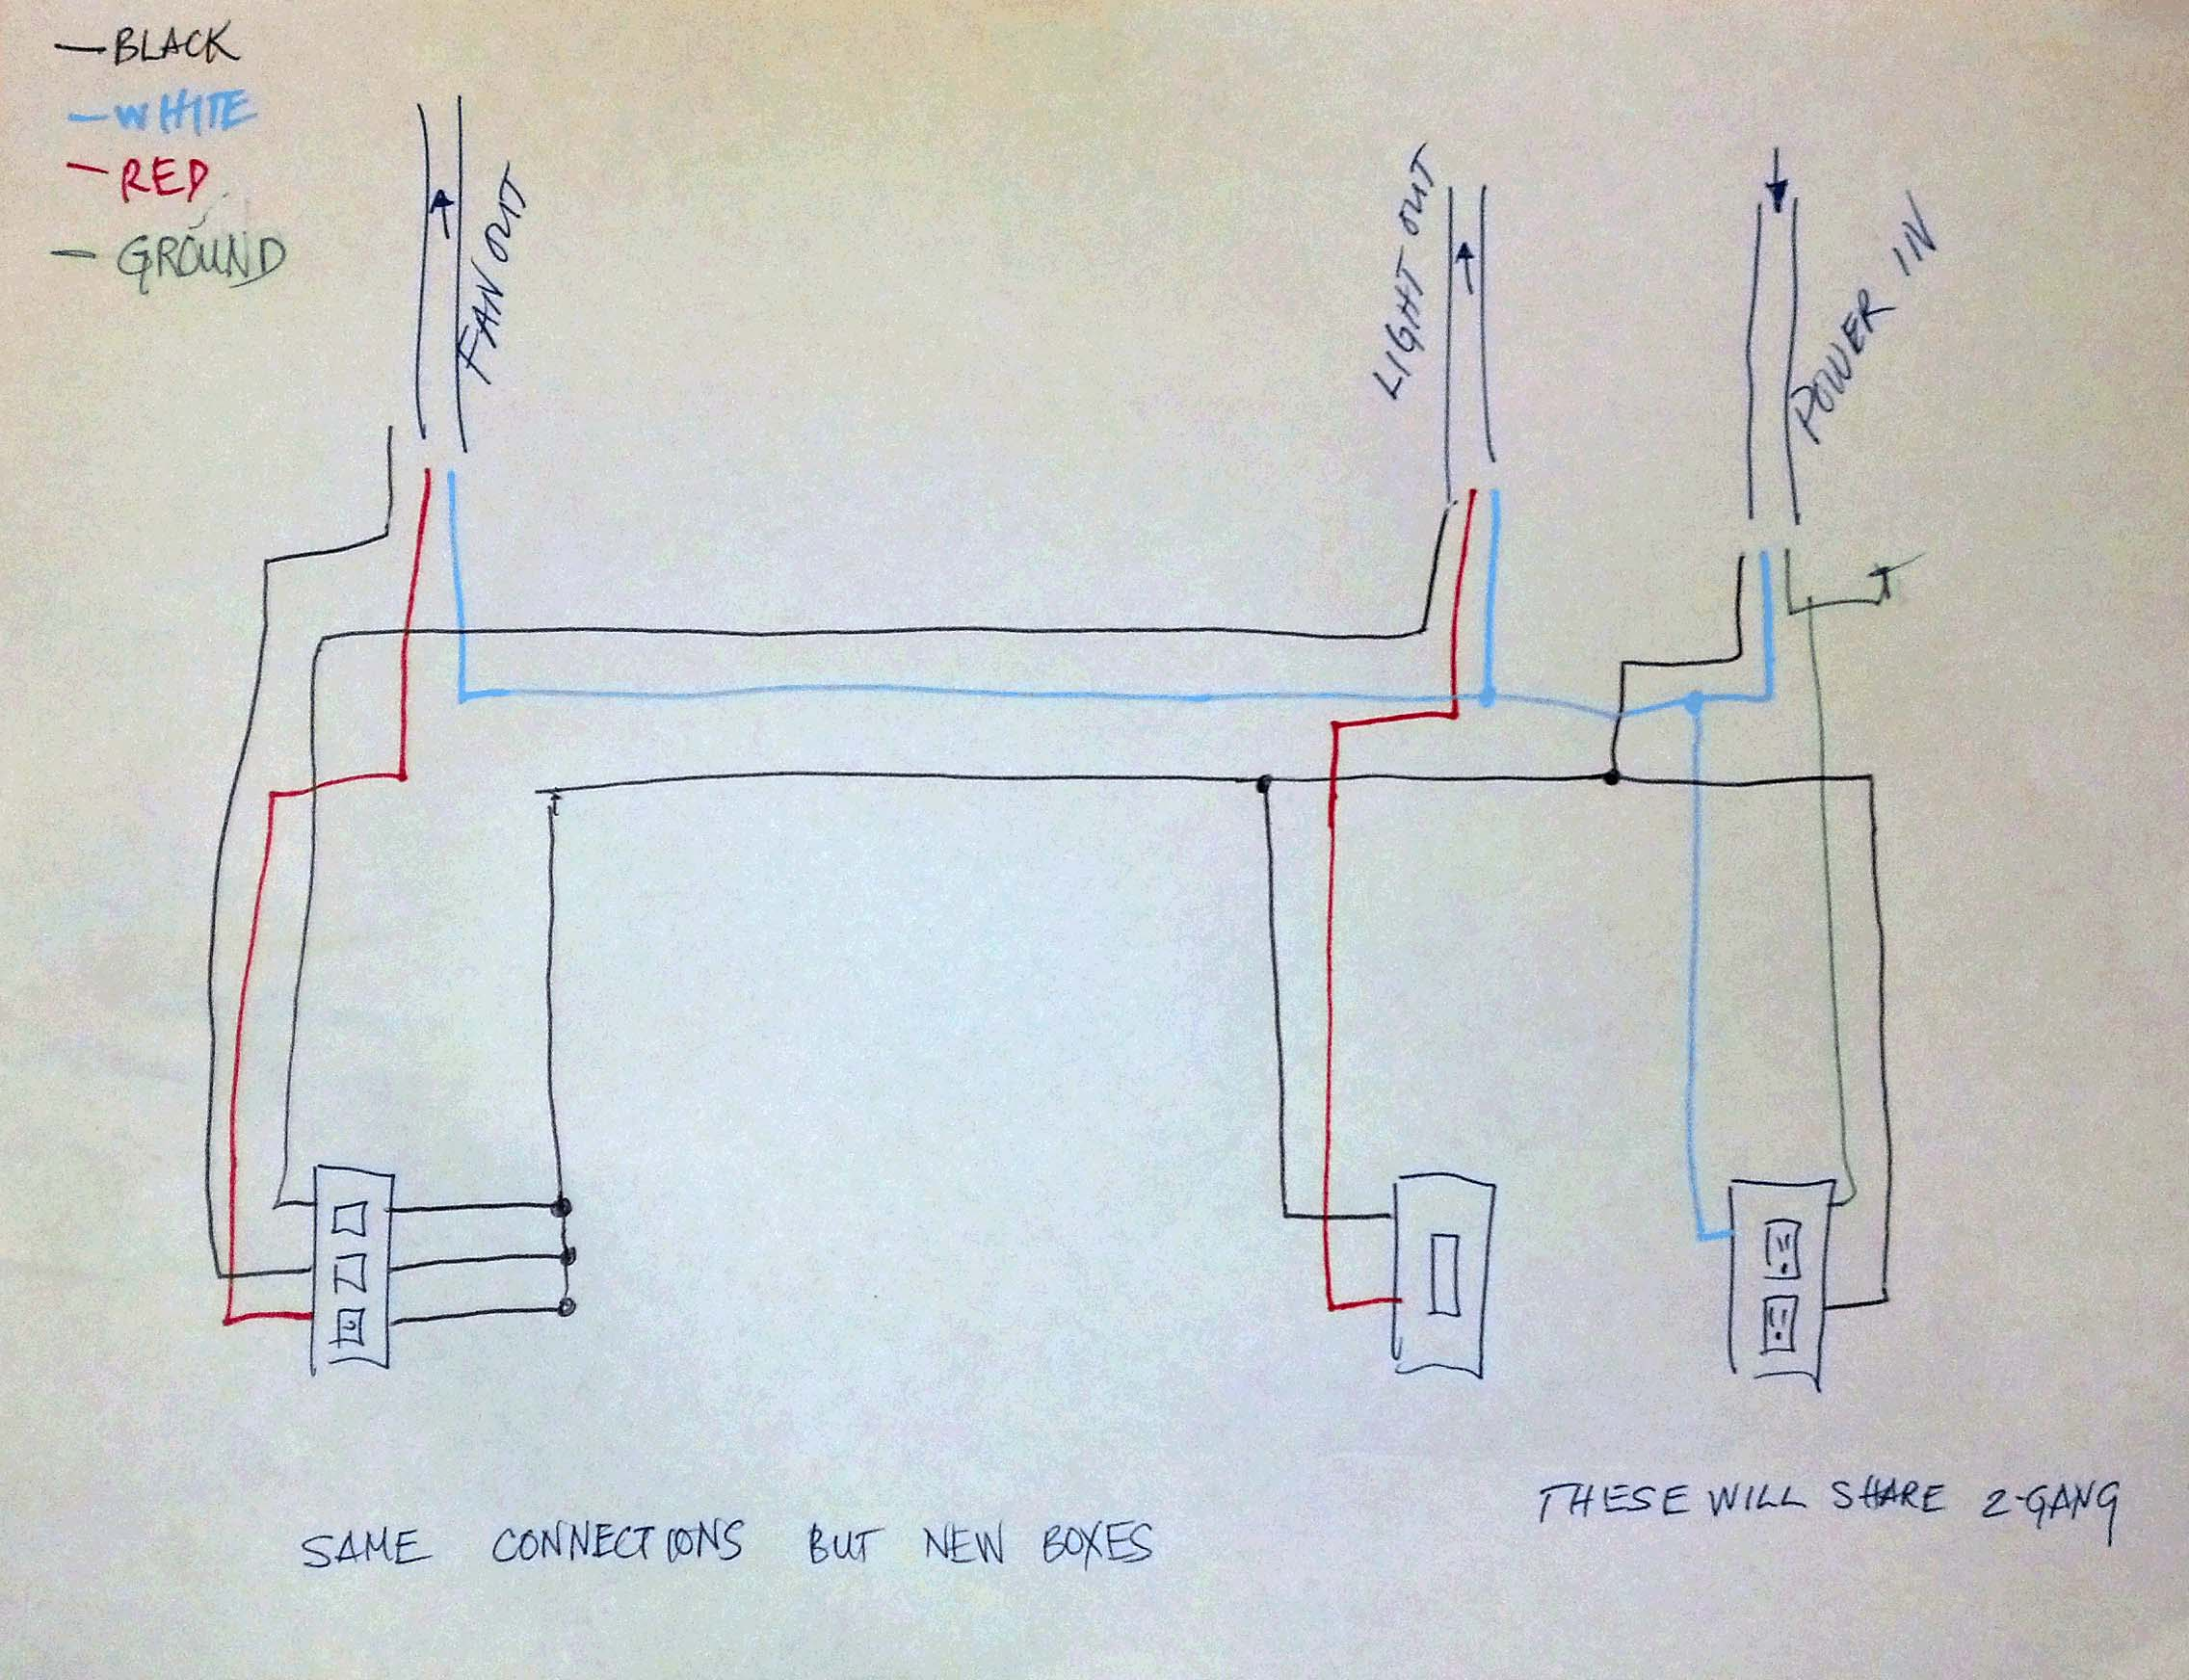 Bathroom fan timer from aircycler wiring diagram - Bathroom Extractor Fan Fitting Vanity Light Wiring Diagram Facbooik Download